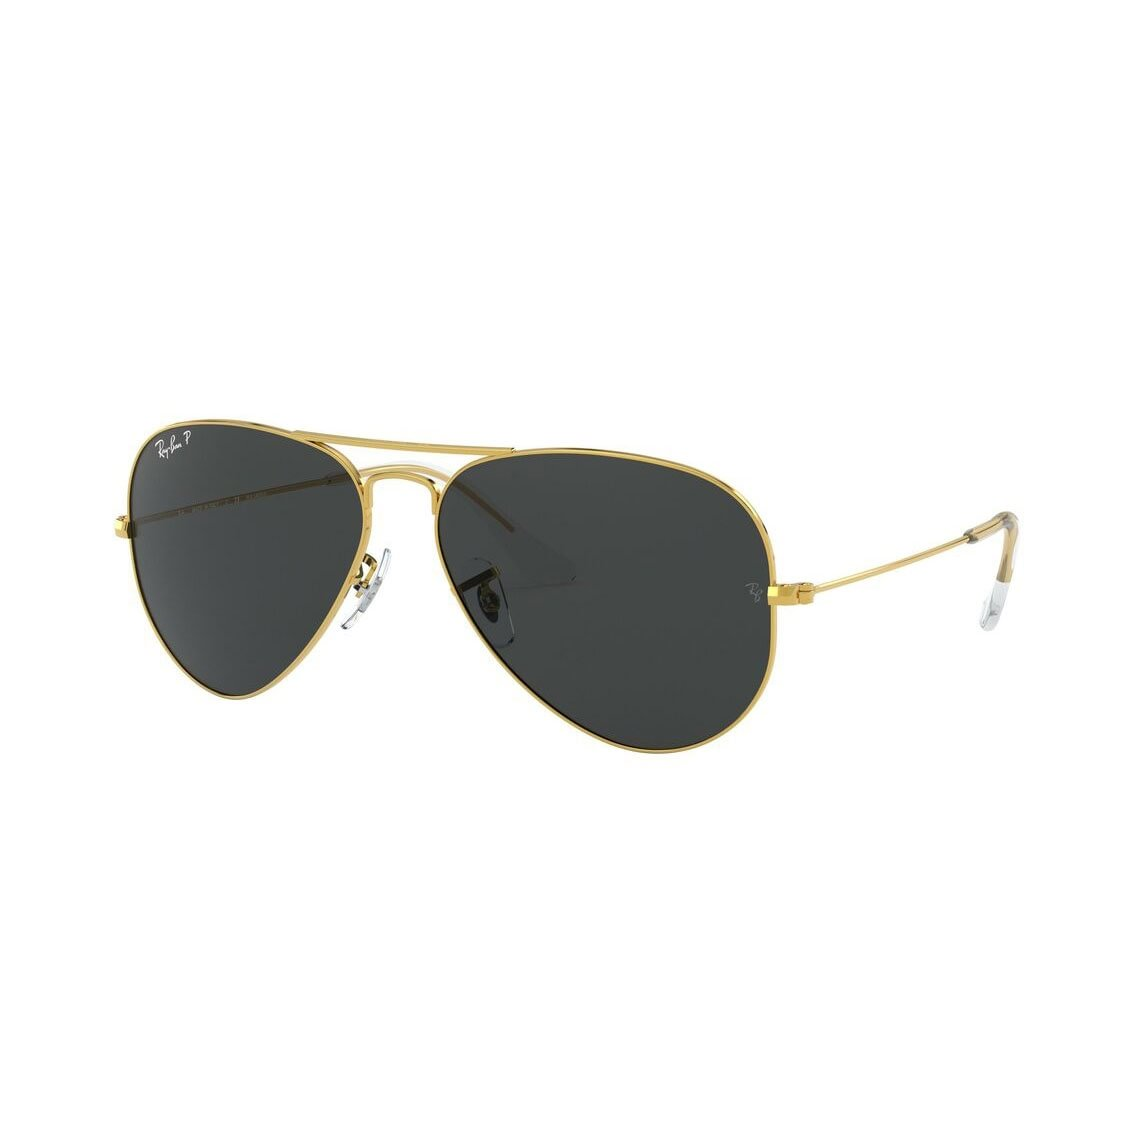 Ray-Ban Aviator Large Metal RB3025 919648 62